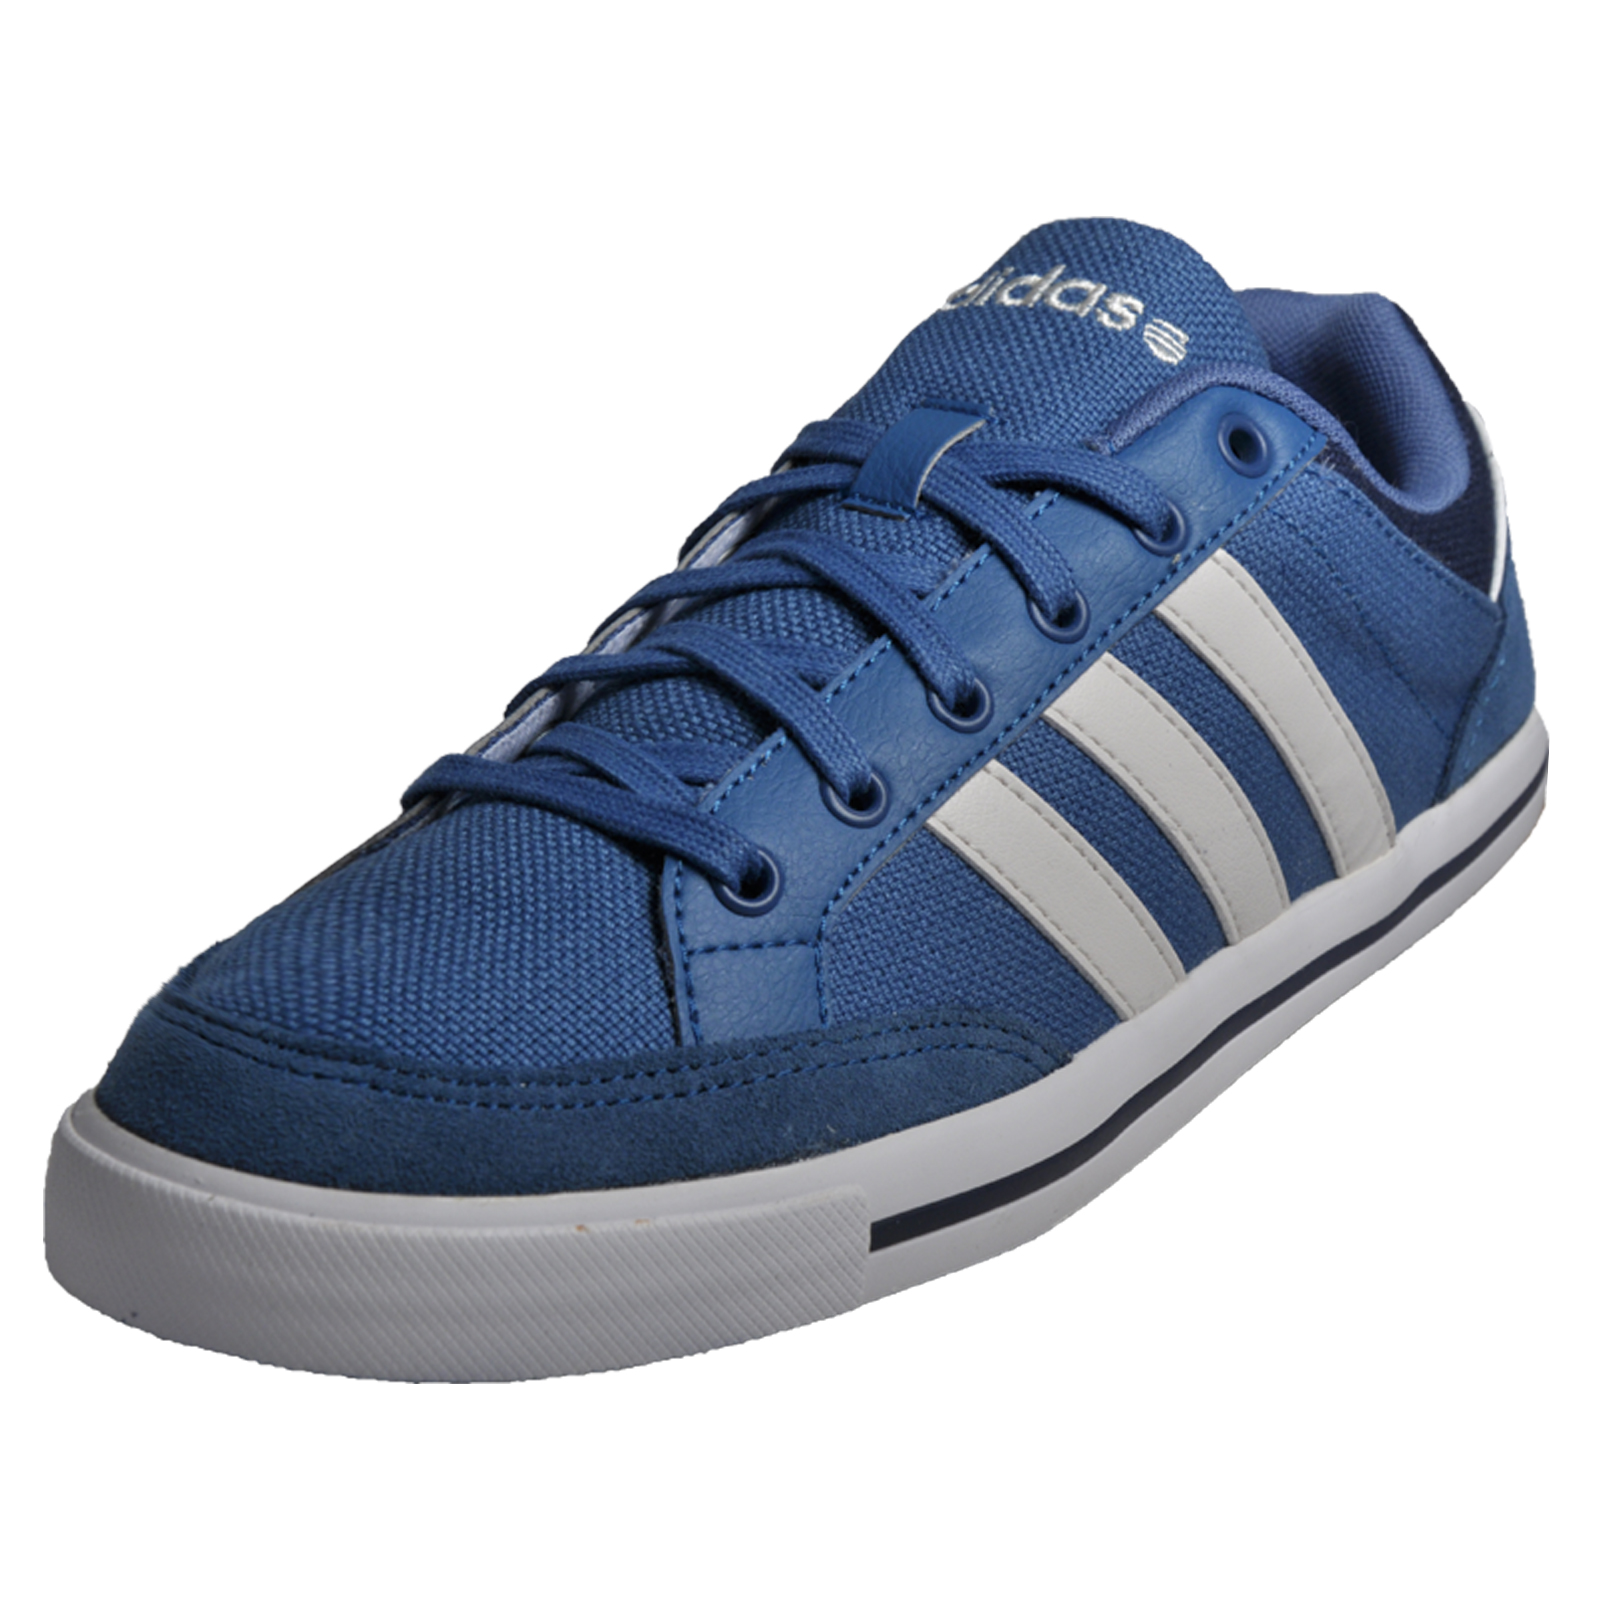 adidas neo trainers blue